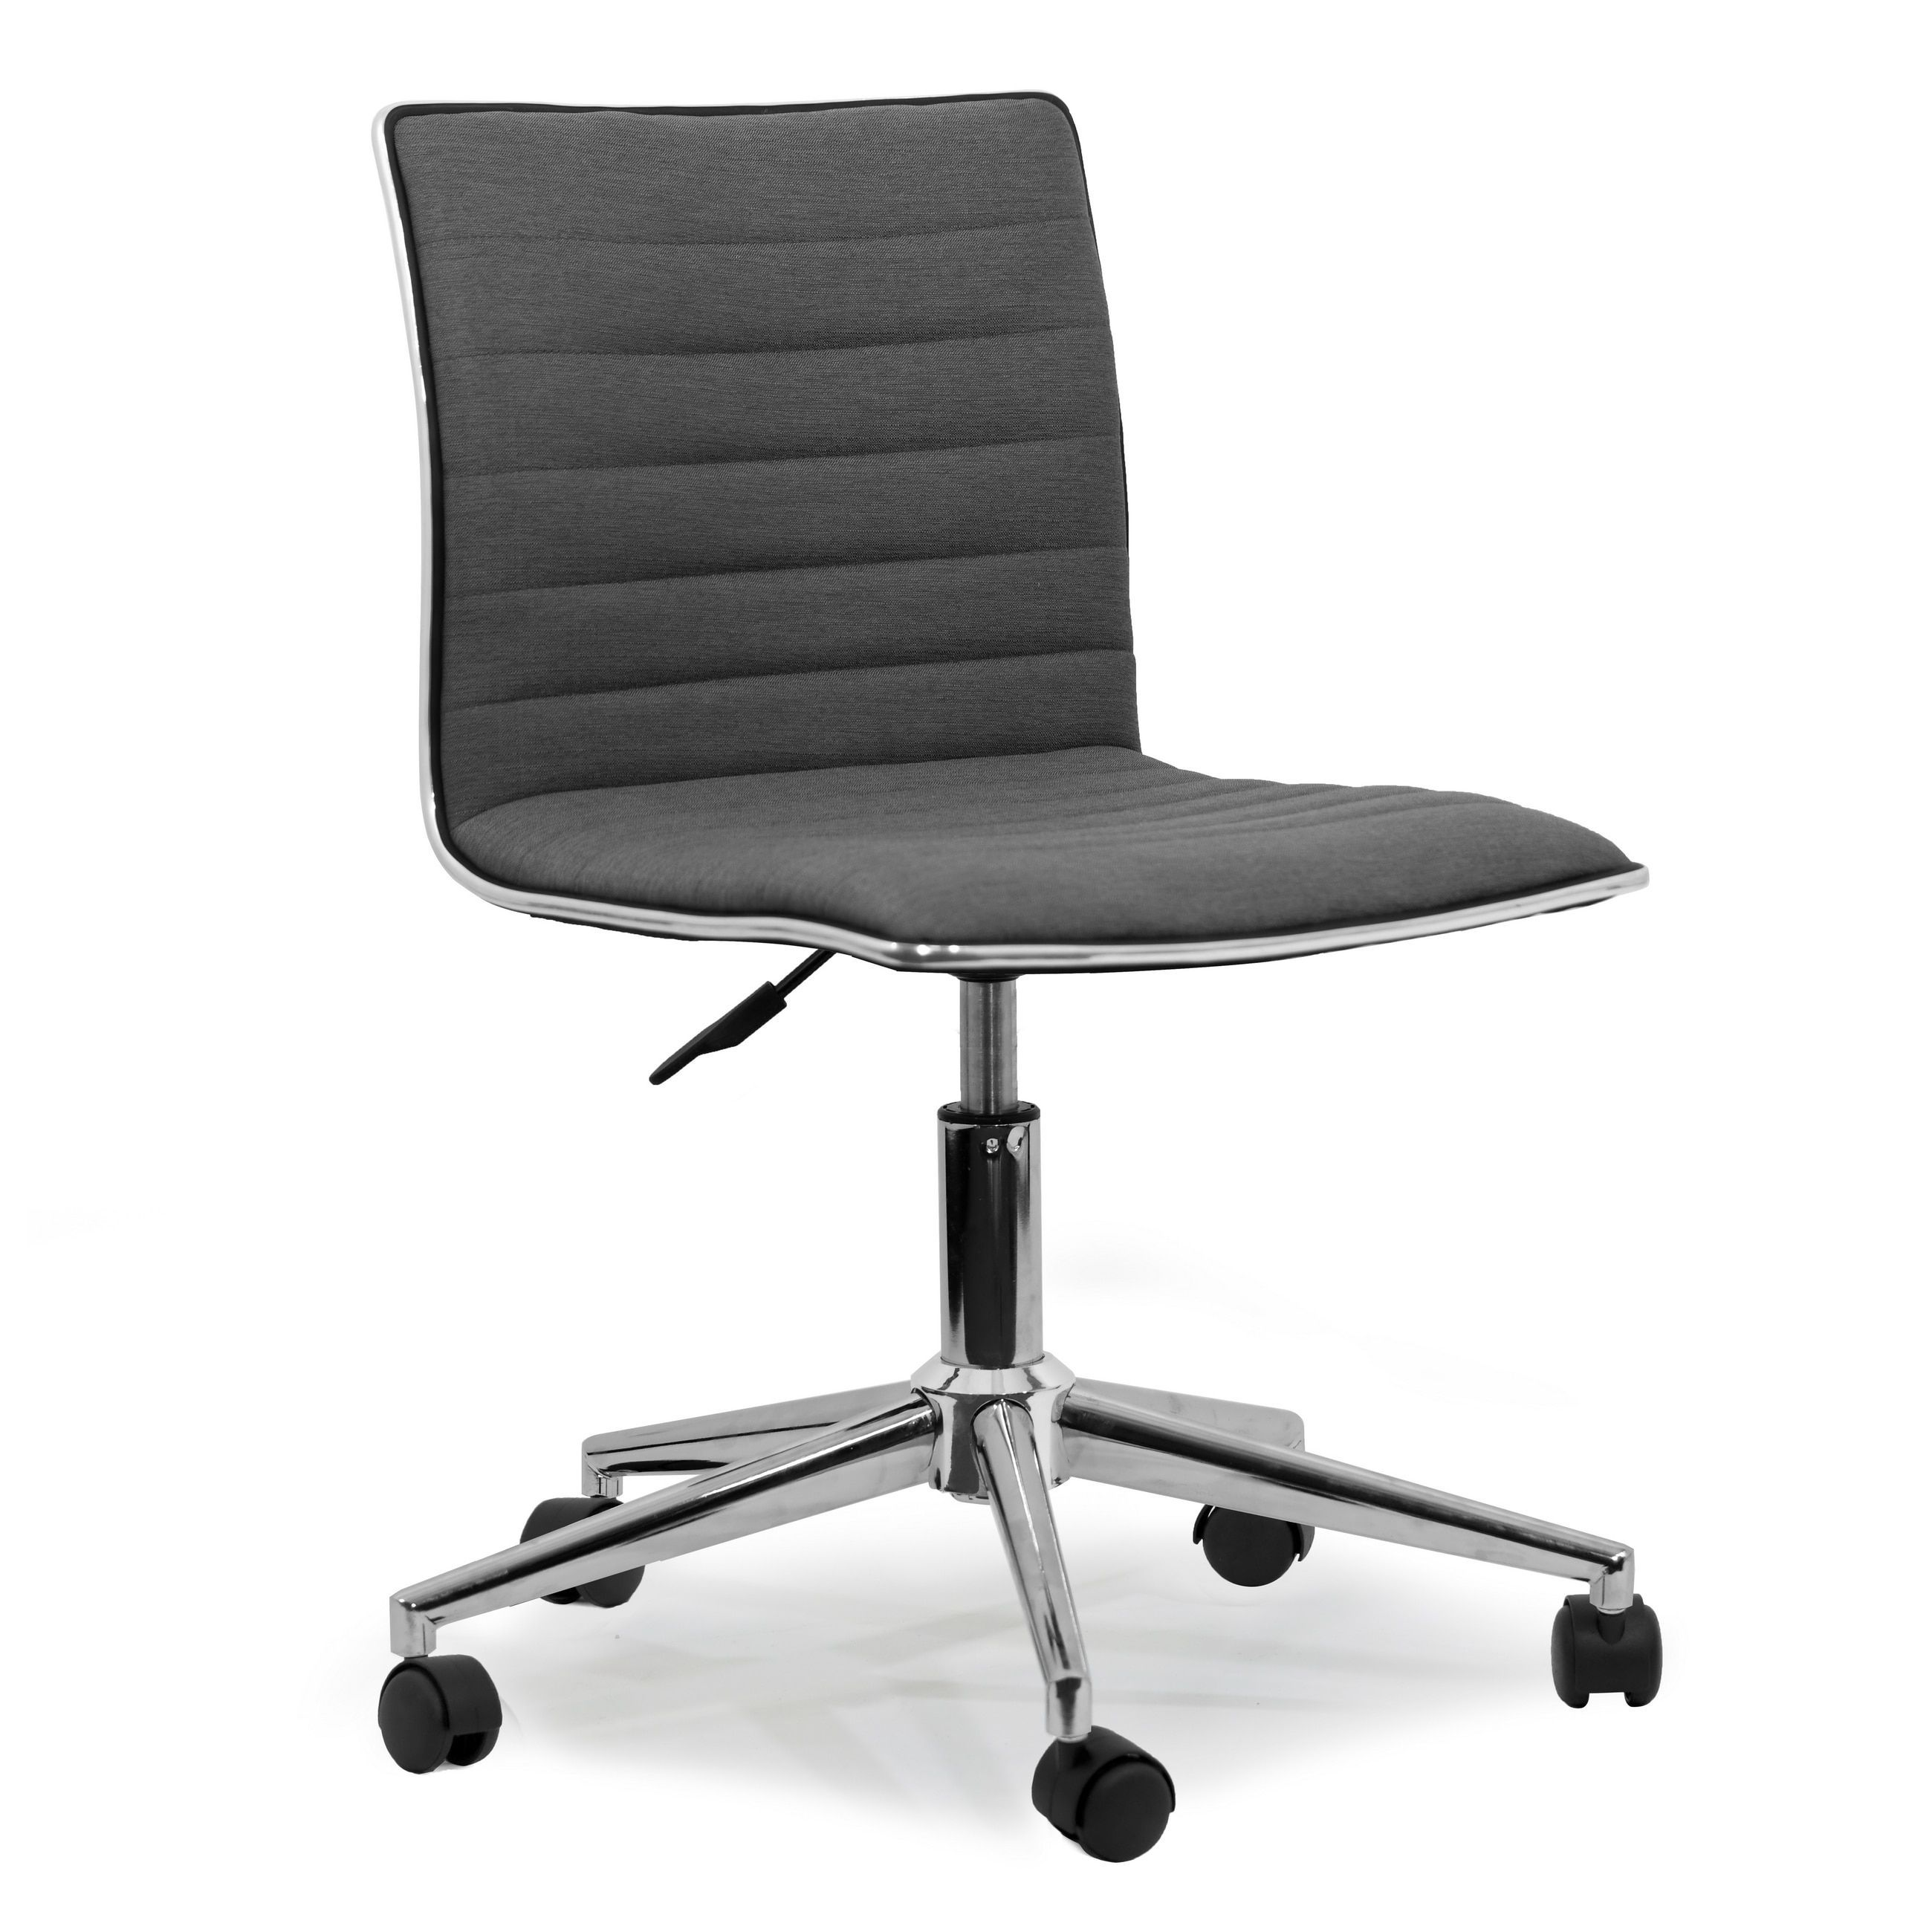 stock today wheels armless amazon ikea chairs plus black lider uk on lumbar with casters hd astonishing chair leather australia staples free photos desk shipping canada office support